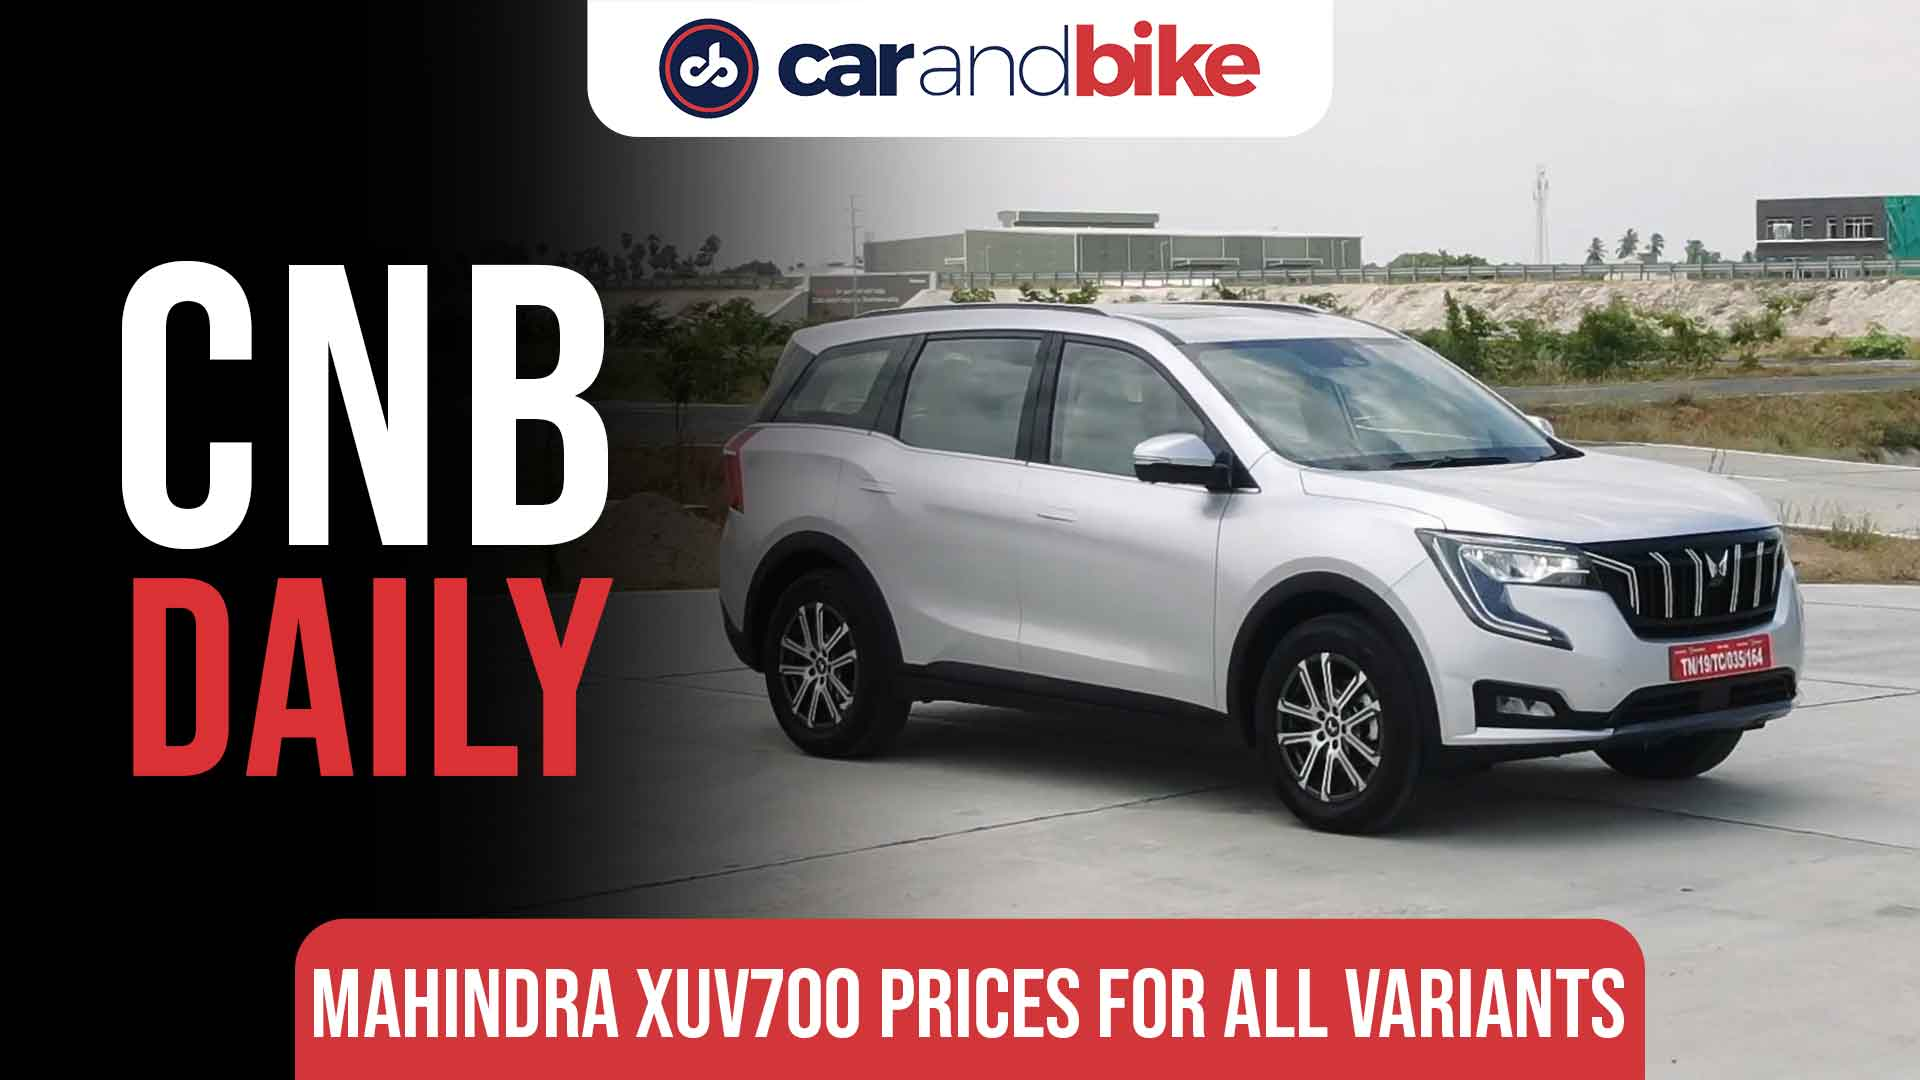 Prices for all variants of the Mahindra XUV700 announced